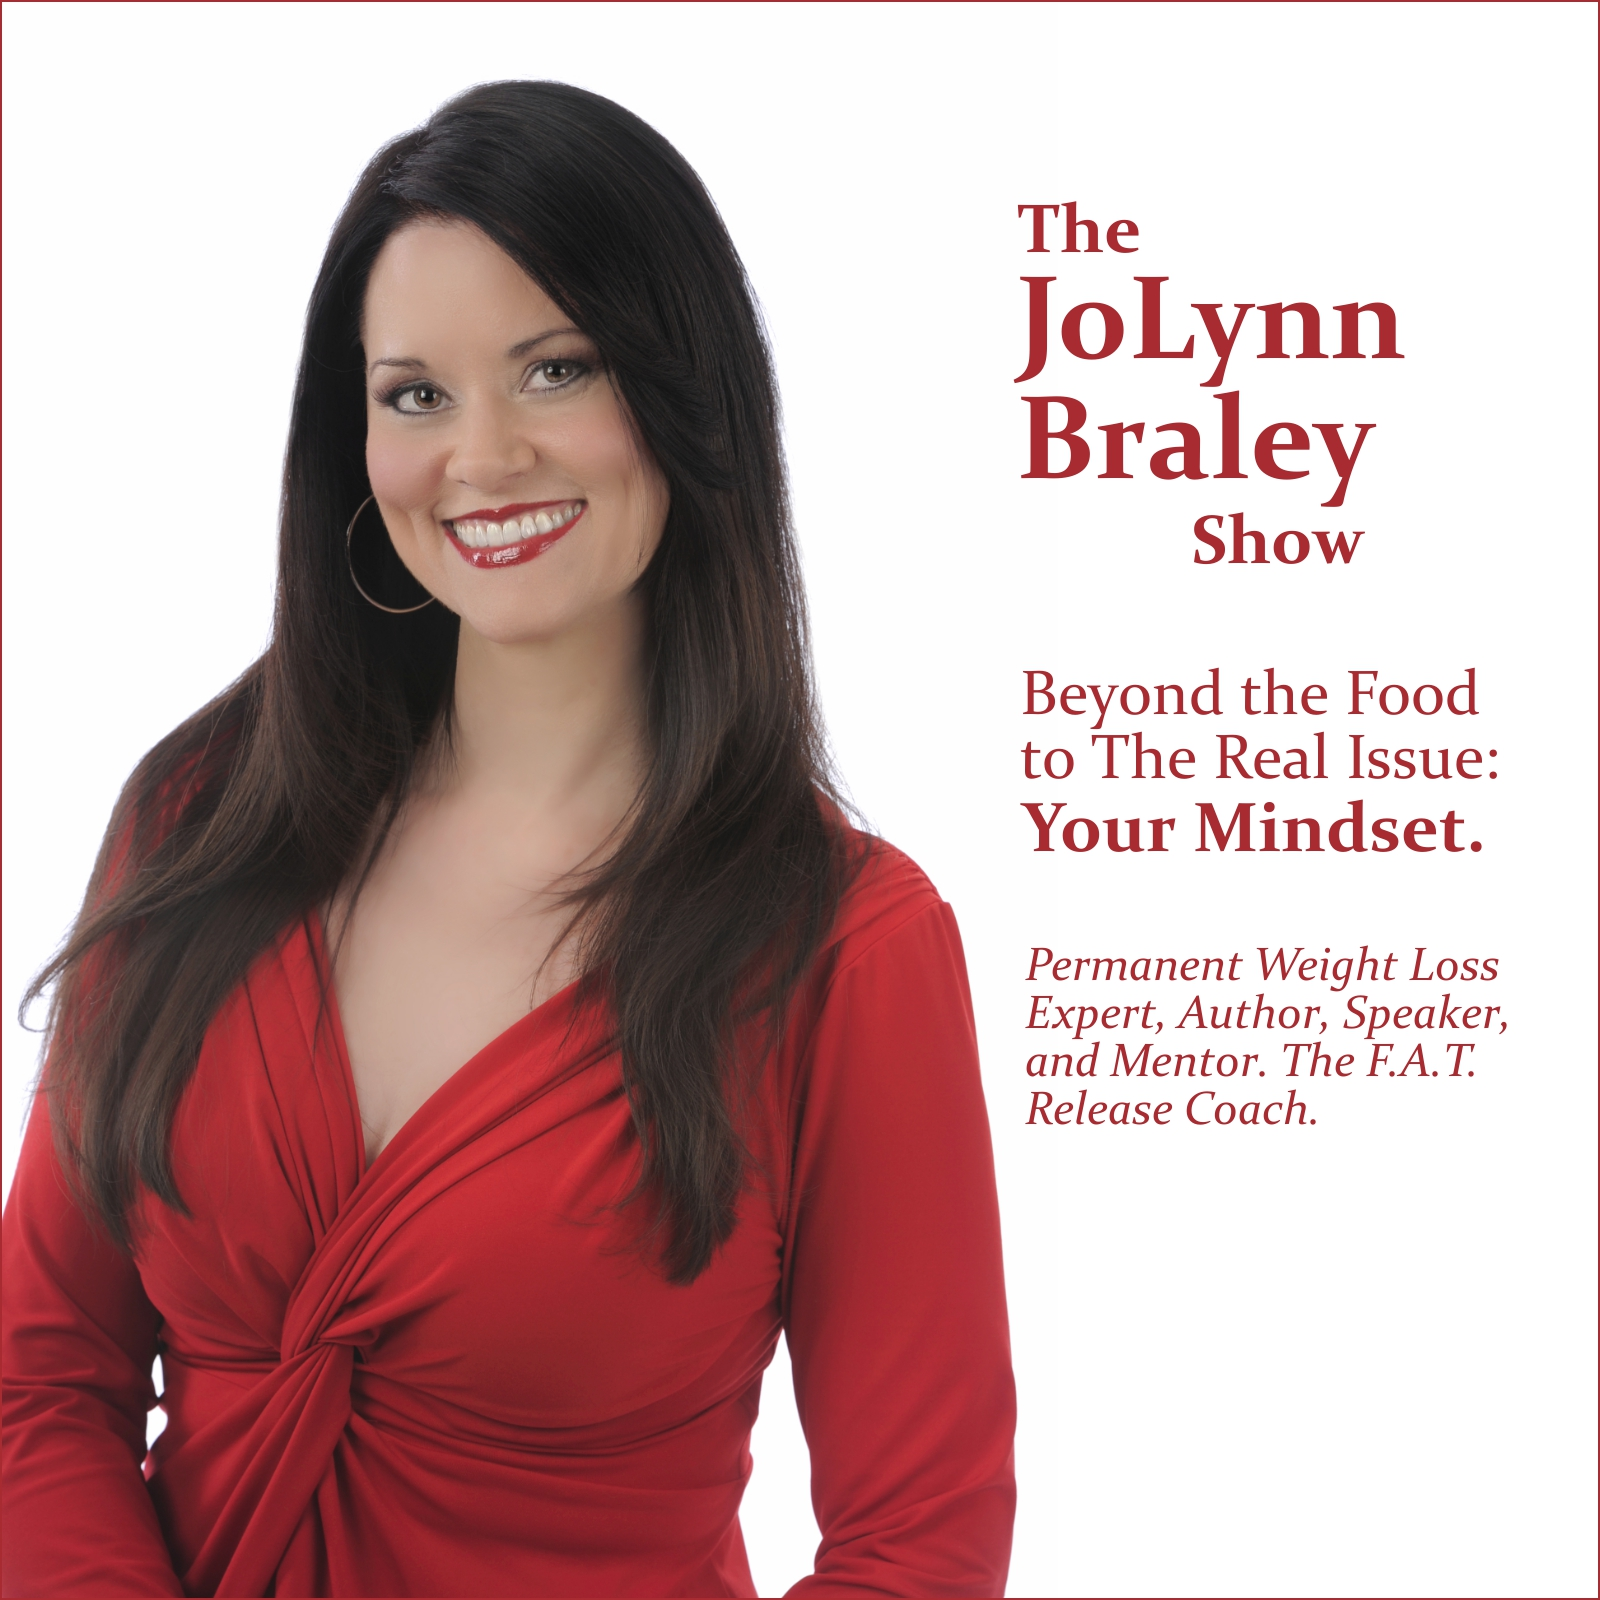 What's The Verdict? Do New Year's Resolutions to Lose Weight Work? [Podcast #005]